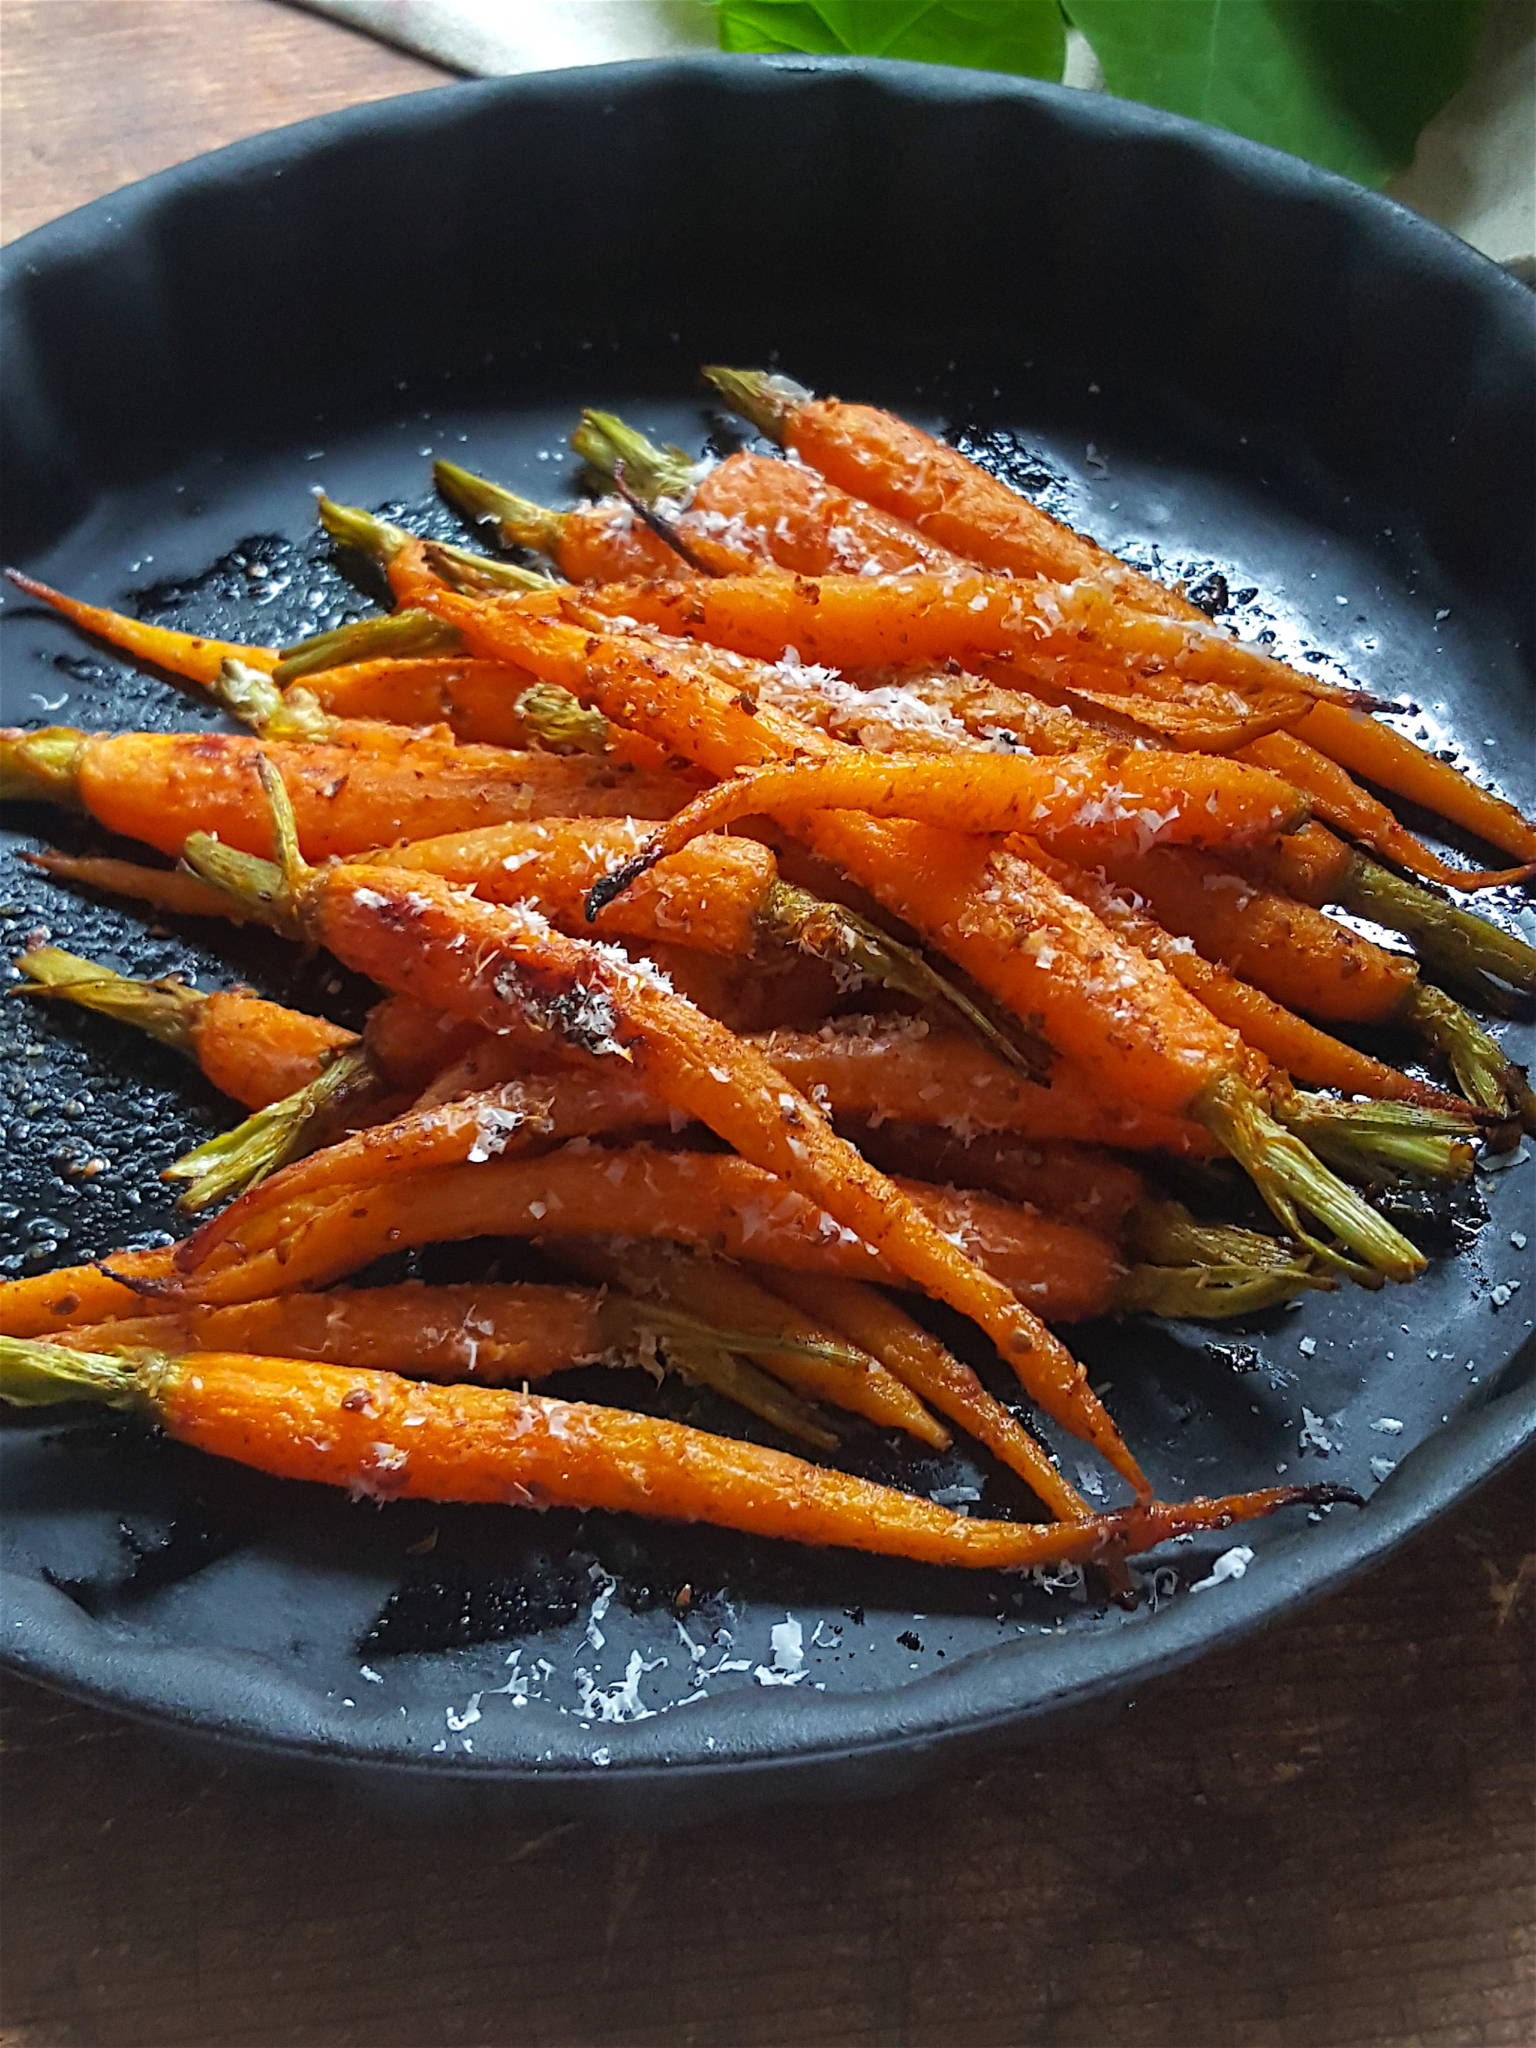 Roasted Carrots with Smoked Paprika